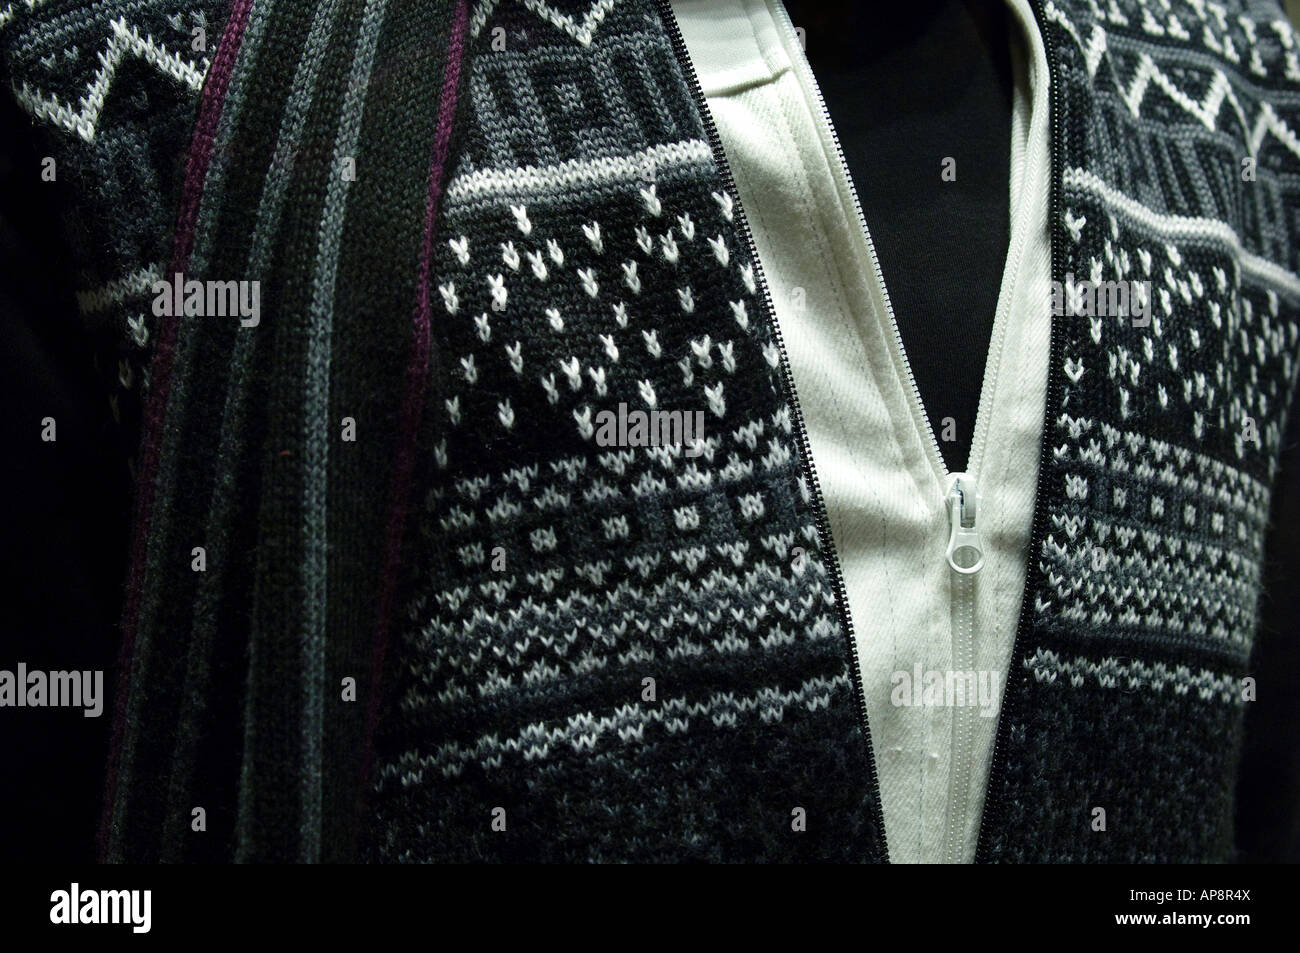 Gray and white patterned sweater, gray and burgundy scarf, white zippered shirt over a black pullover shirt - Stock Image